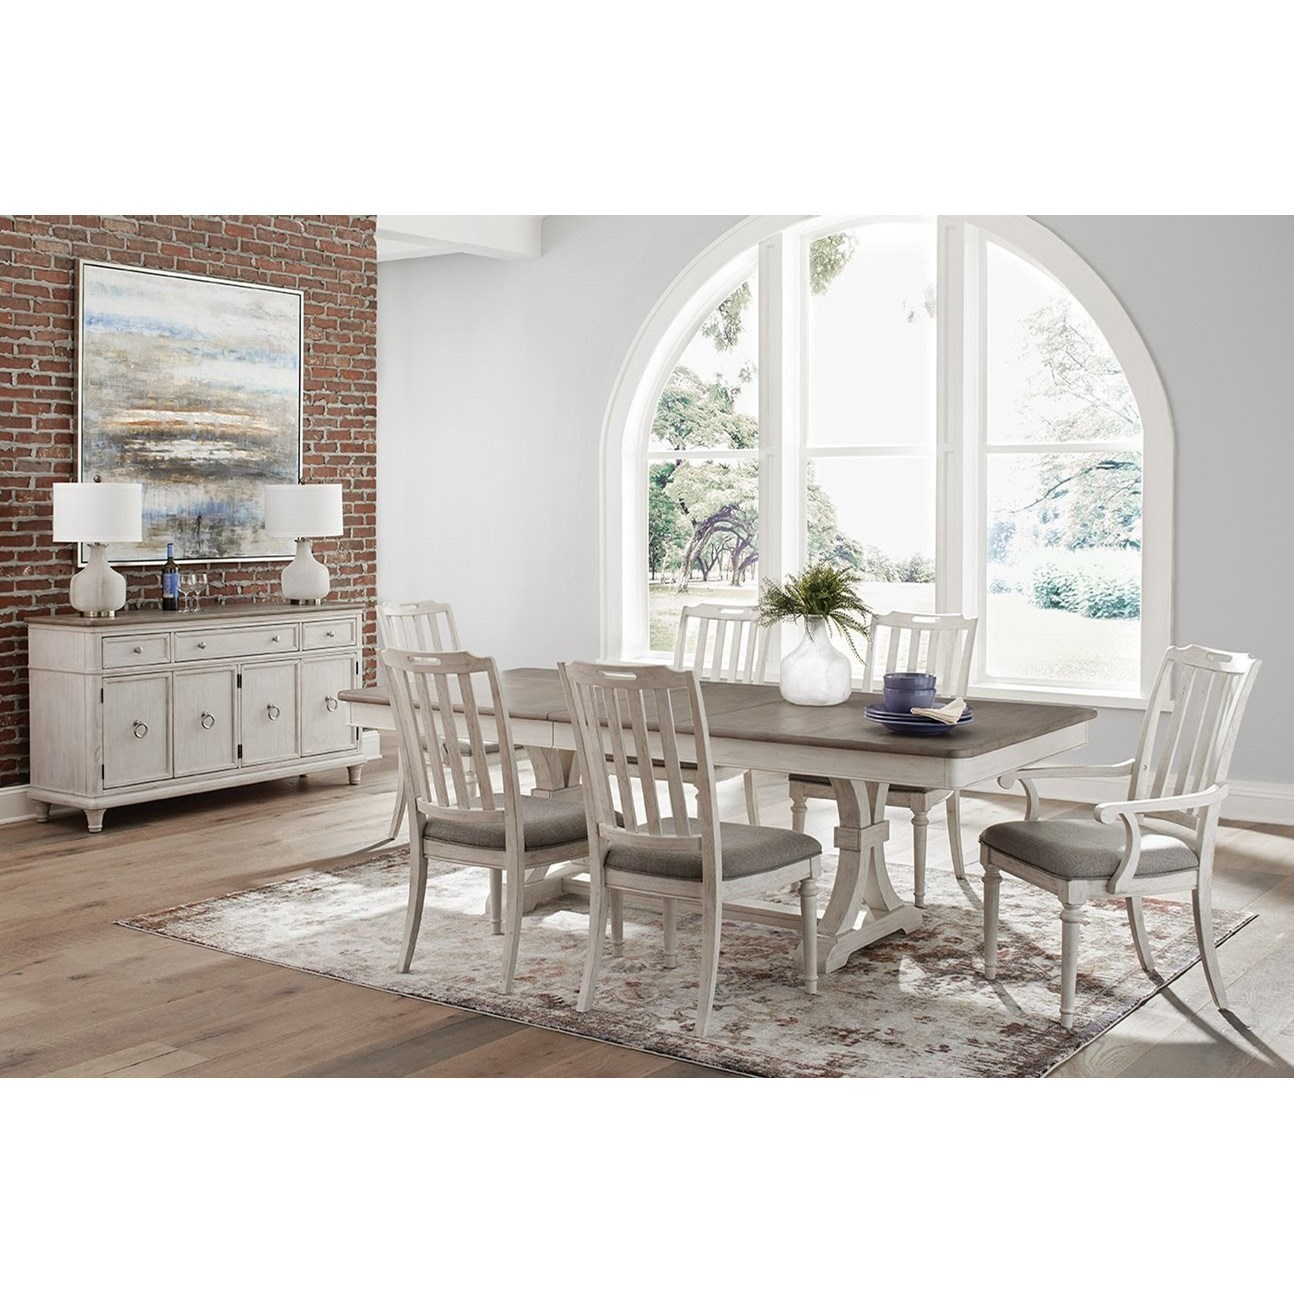 Sonoma Dining Room Group by Panama Jack by Palmetto Home at Baer's Furniture